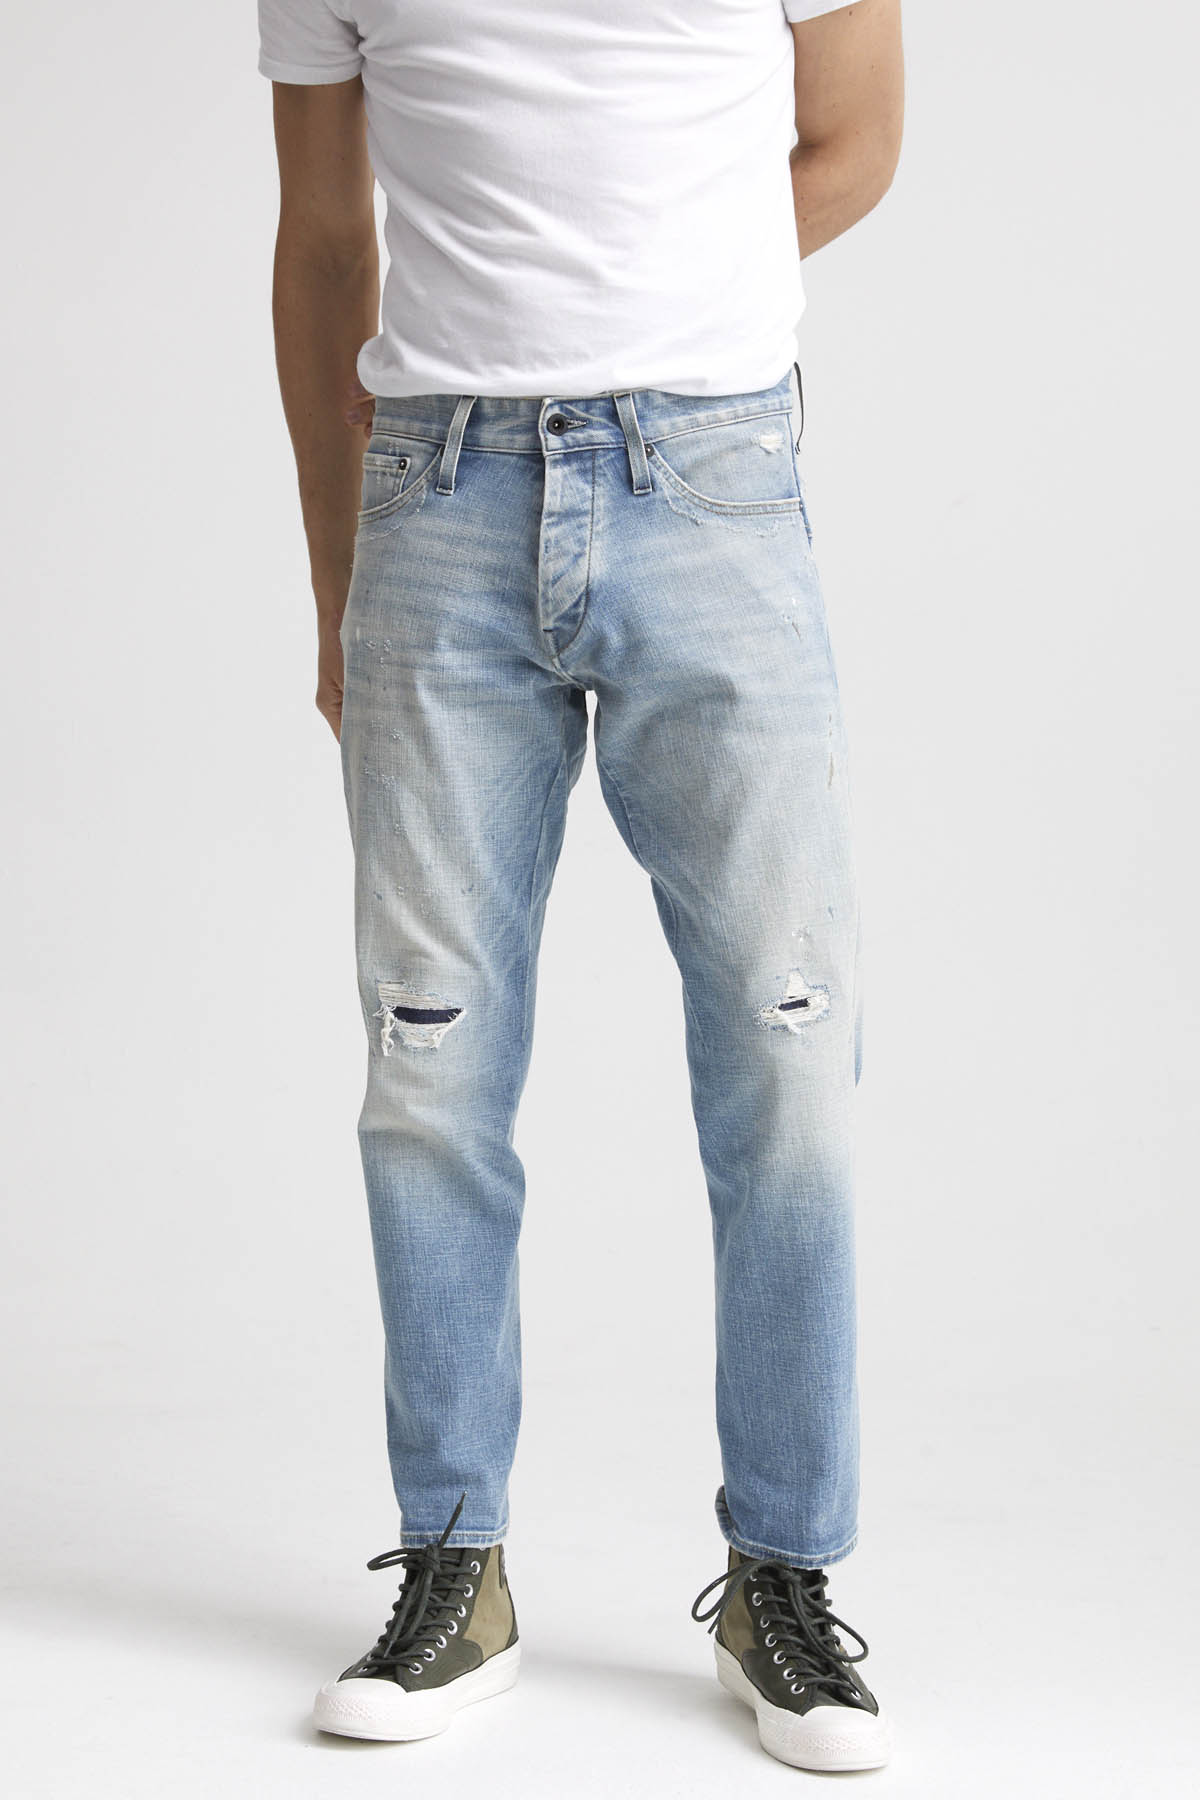 Kinetic - Wide Tapered Fit Jeans - Front